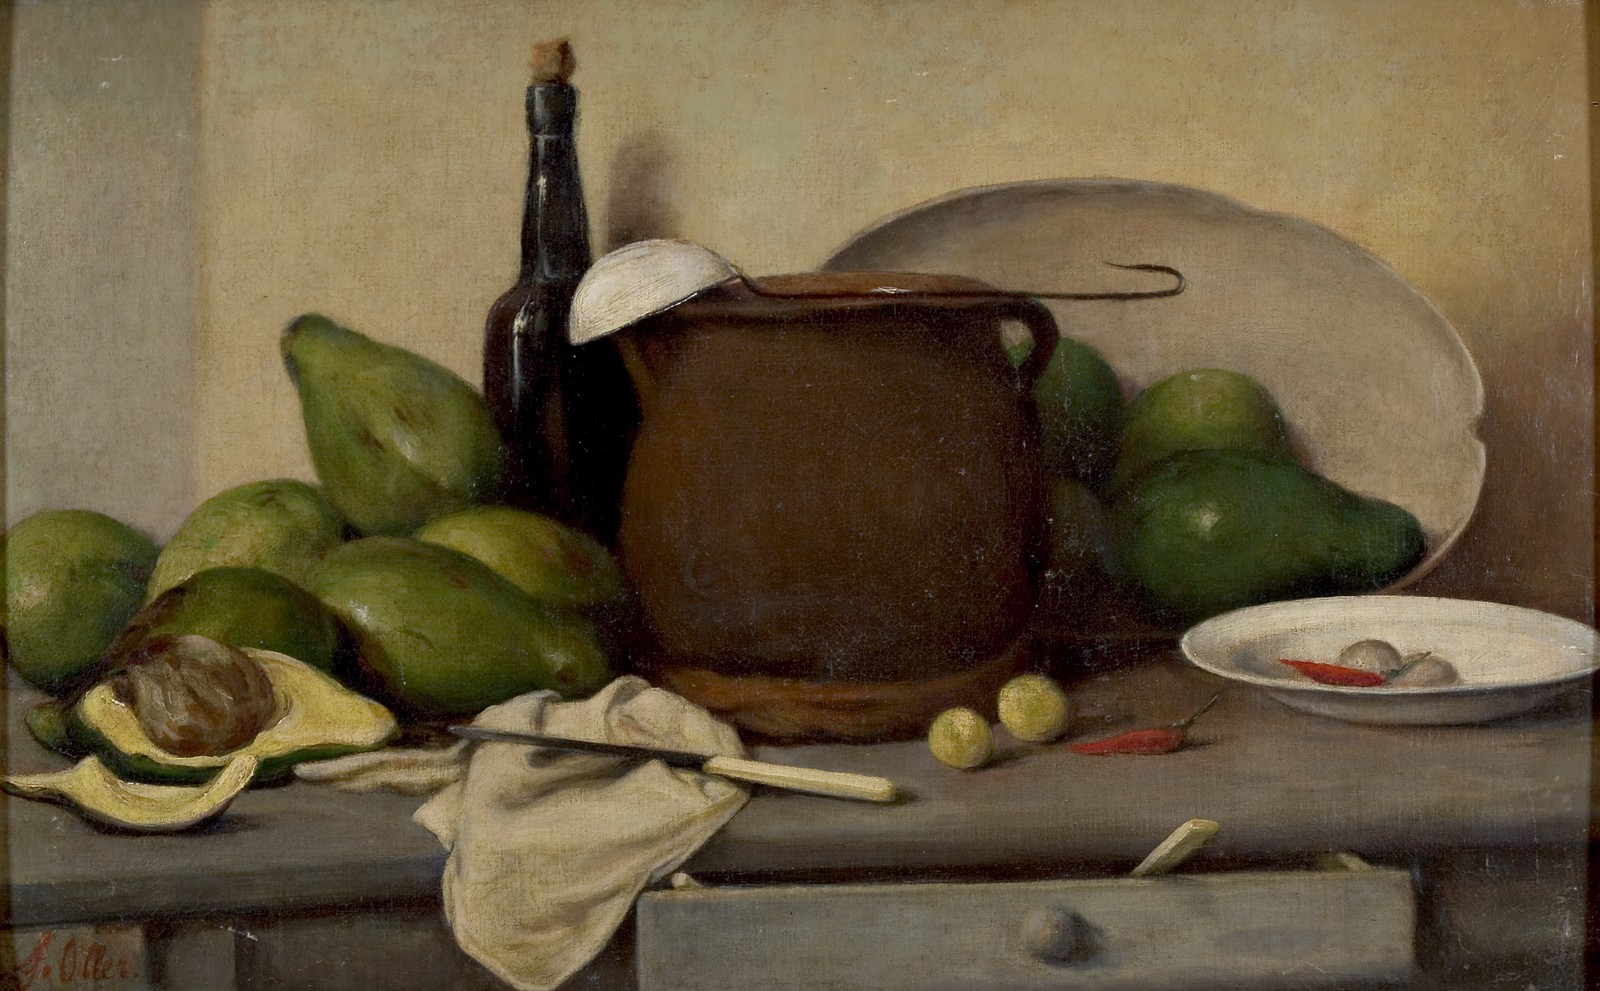 Still Life with Avocados and Utensils